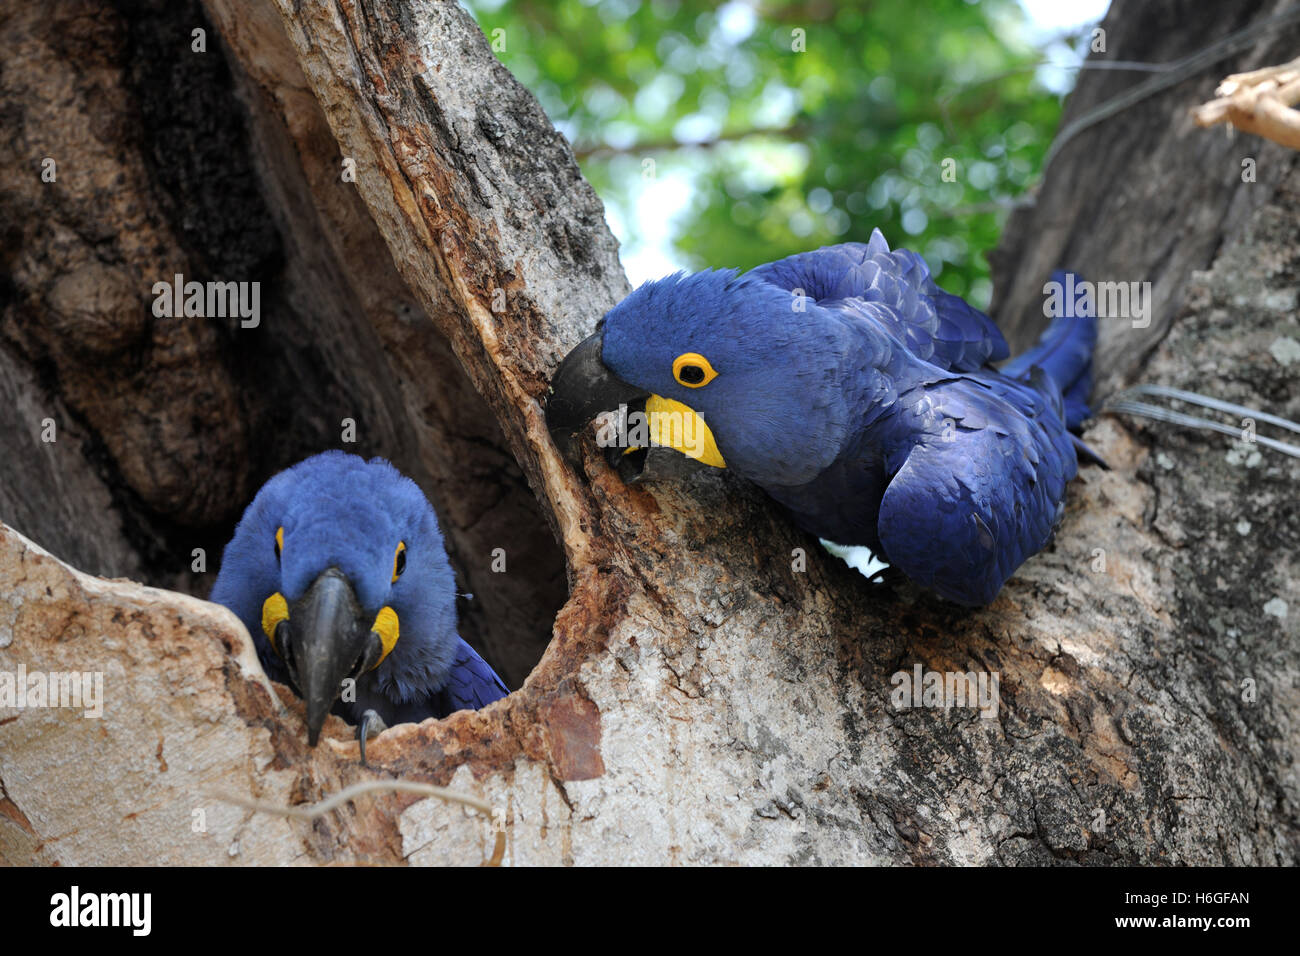 Mating pair of Hyacinth Macaws at a nest hole, in a tree, near Port Jofre, Pantanal, Brazil - Stock Image